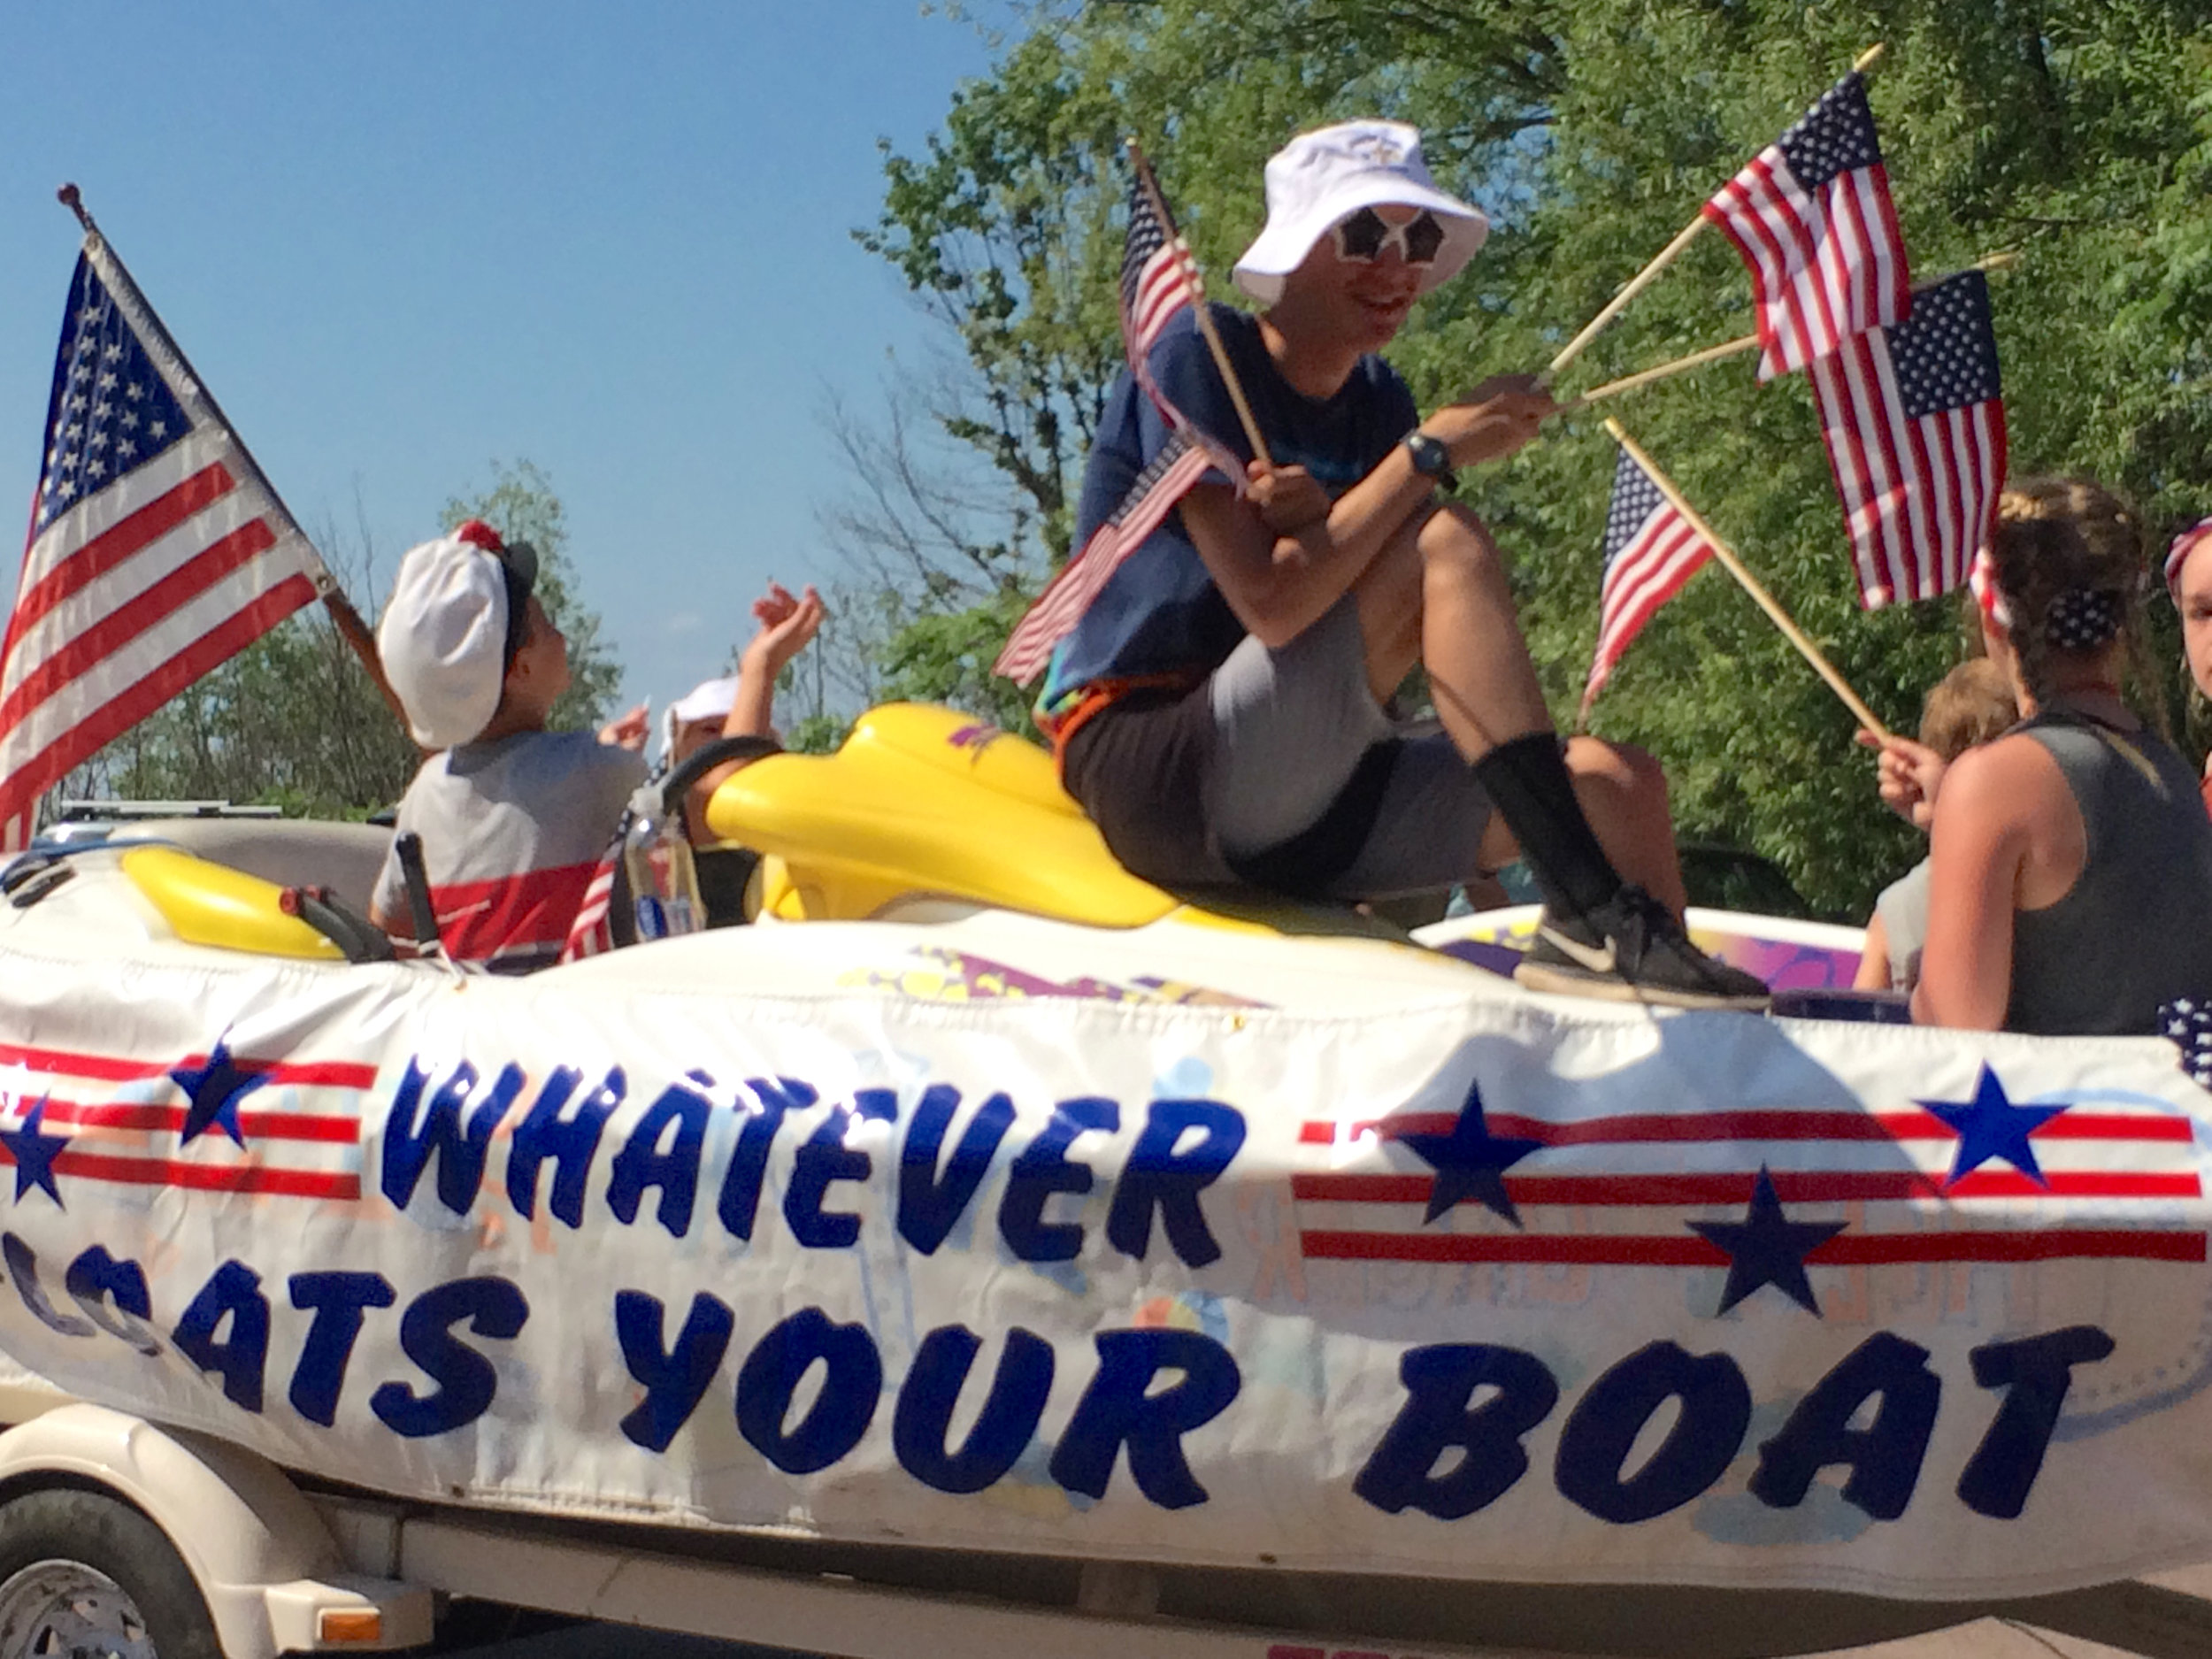 Part of MIYC Parade Entry for 4th of July, 2017